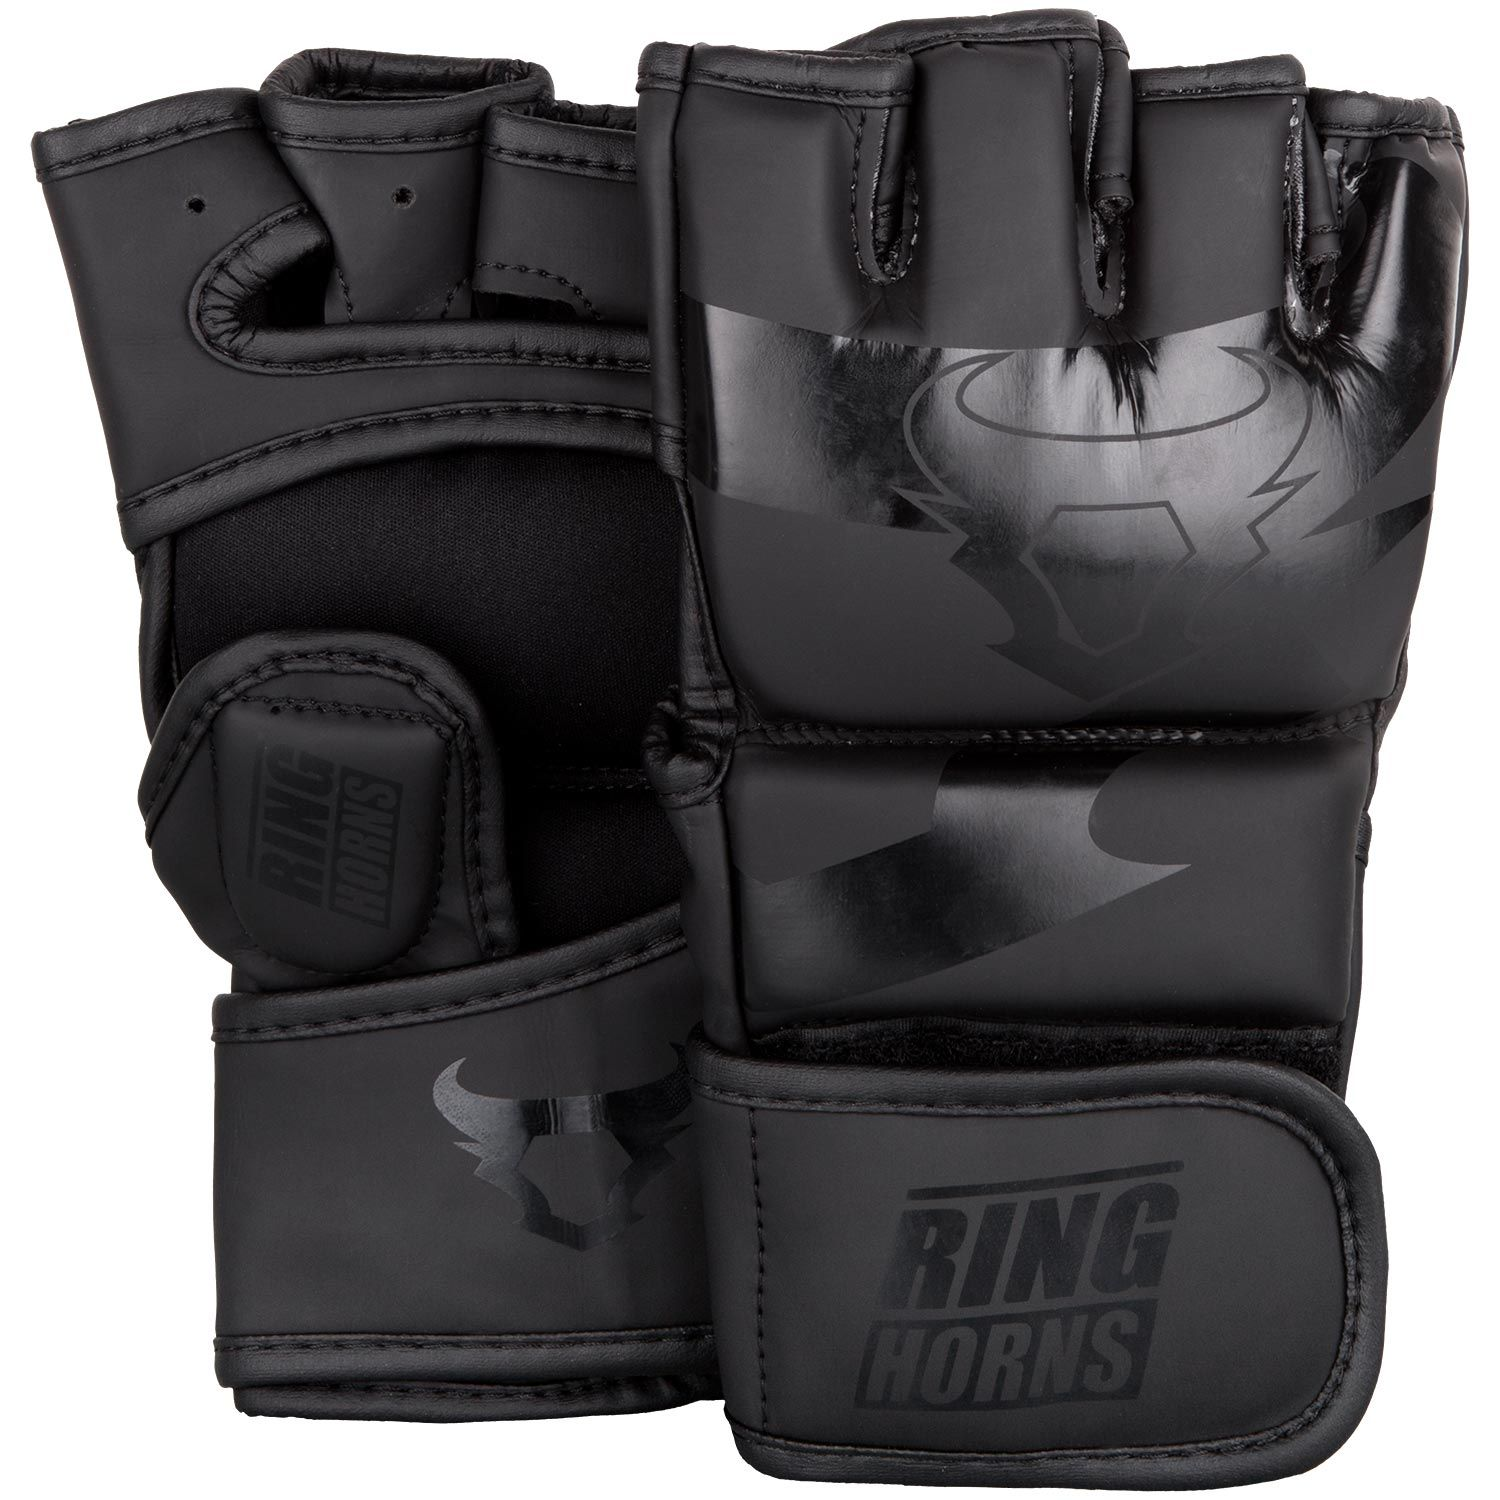 Gants de MMA Ringhorns Charger